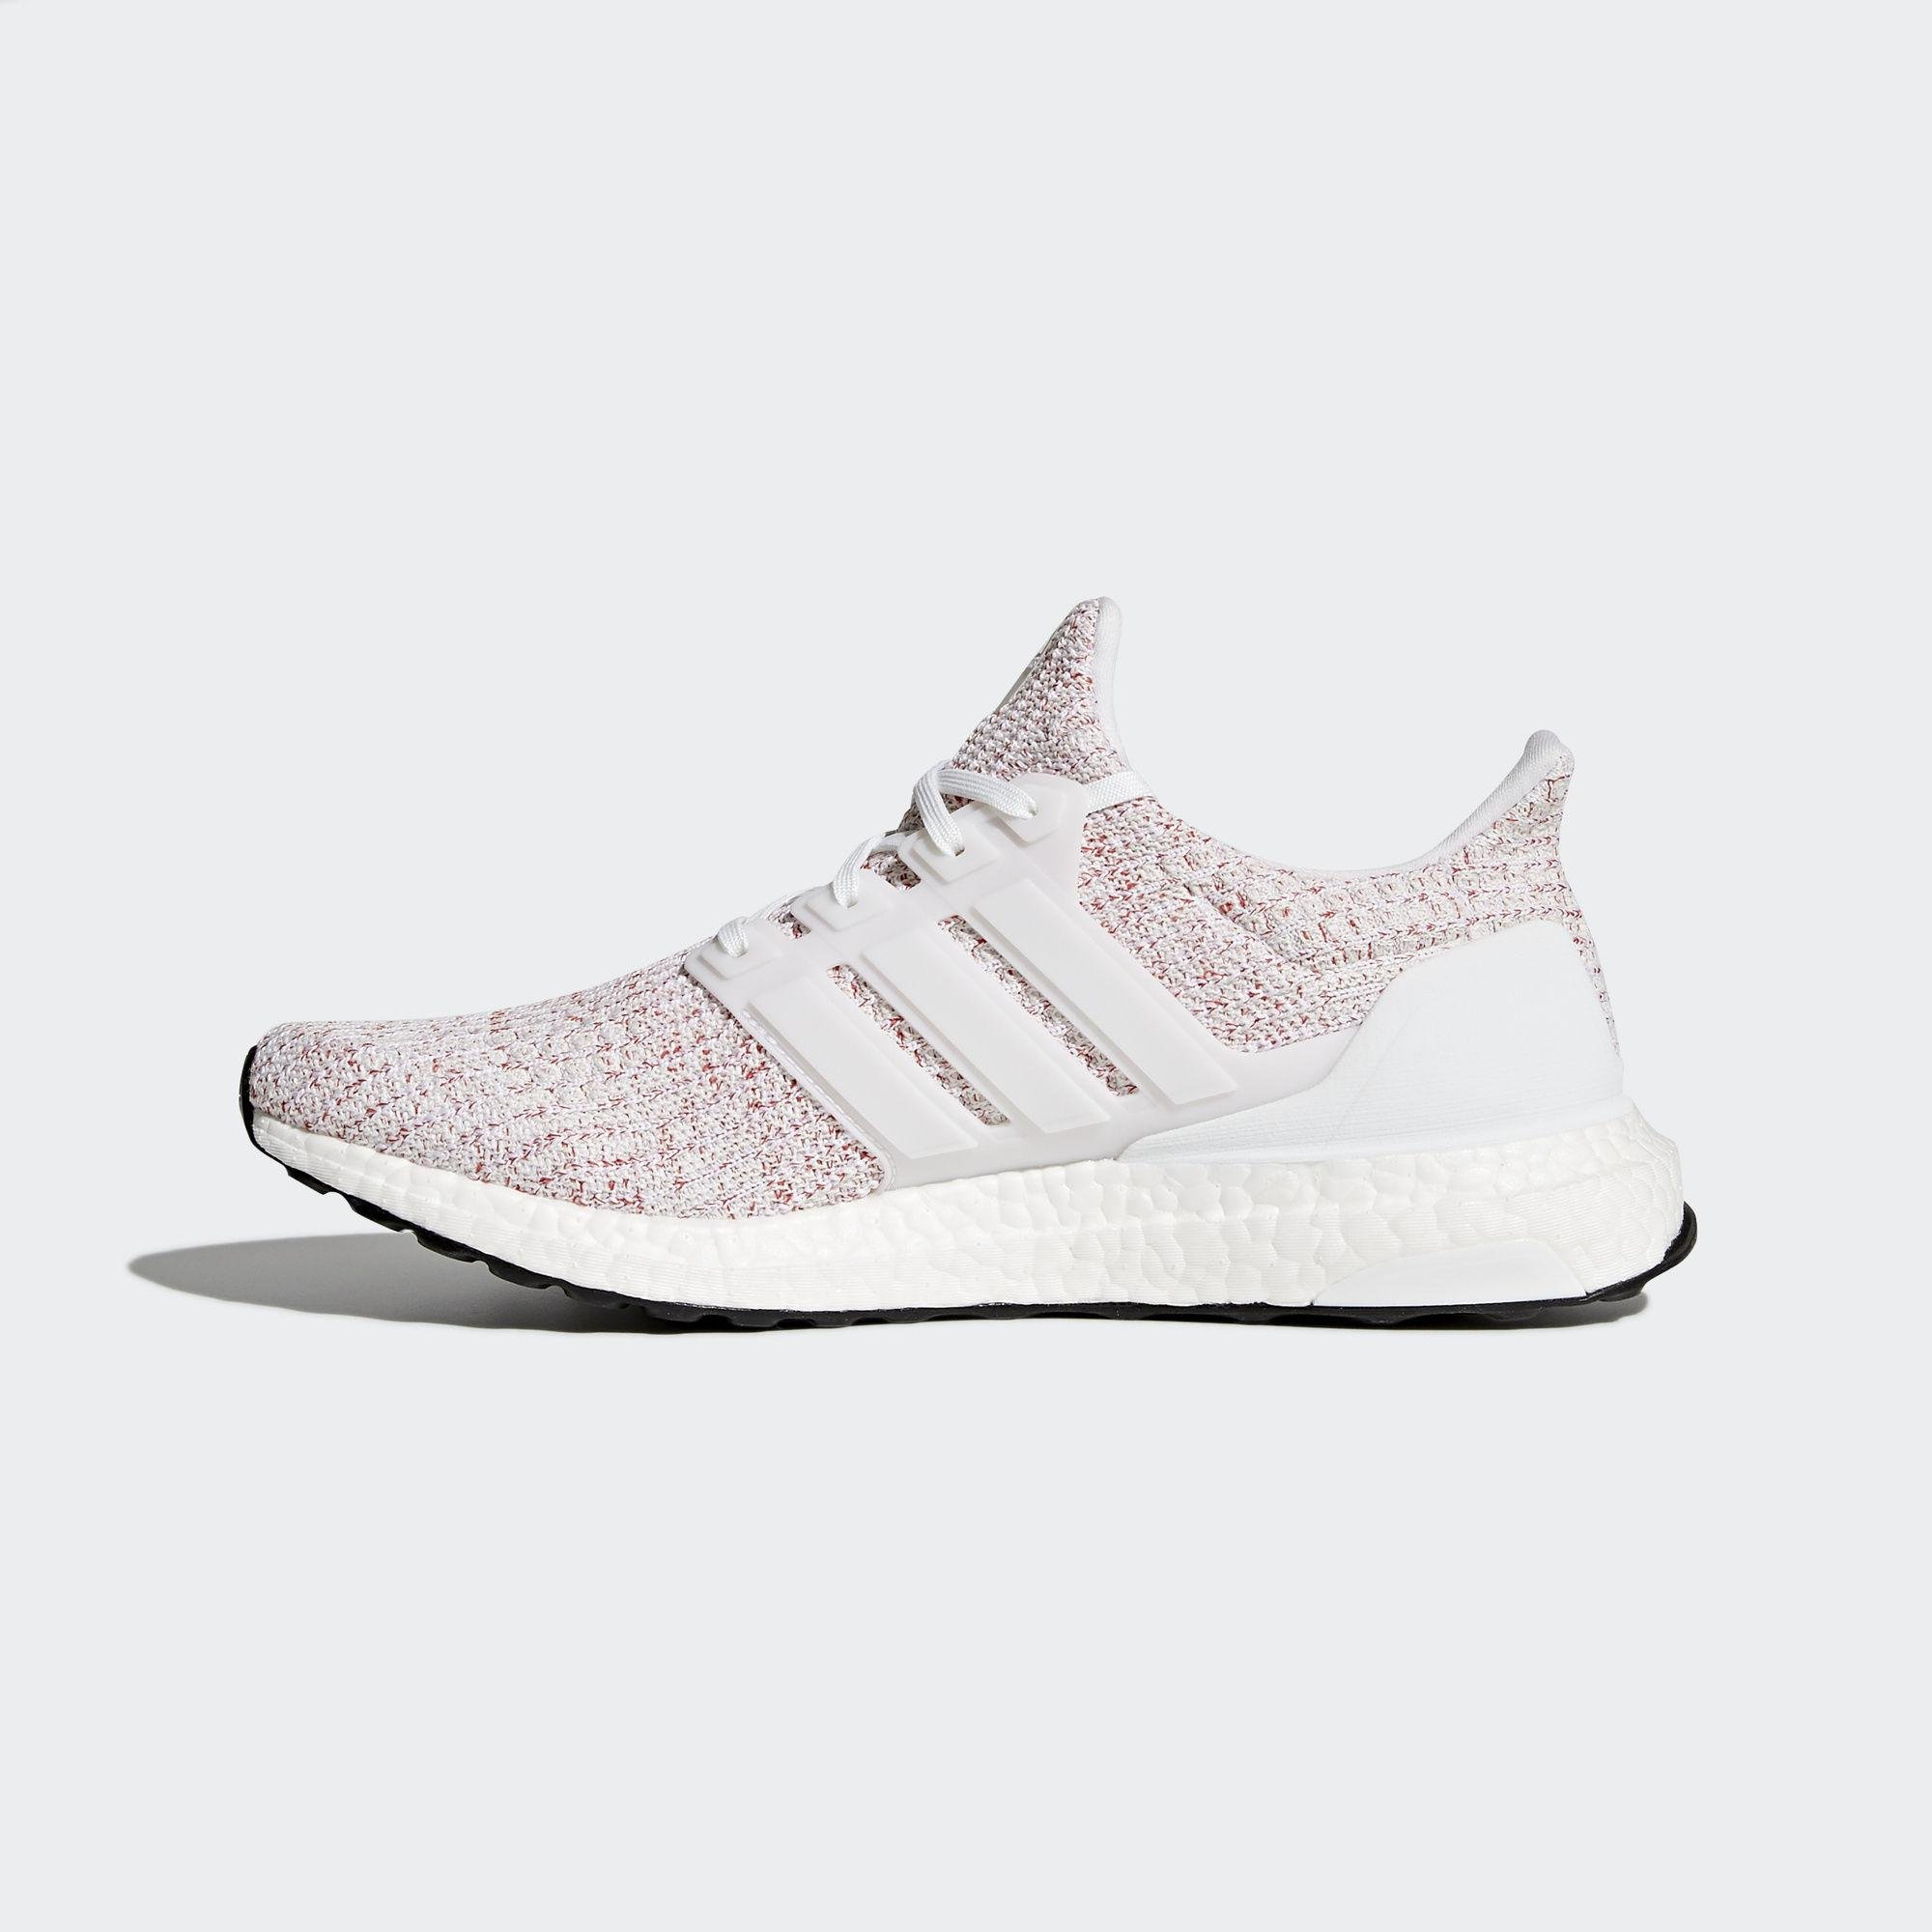 836fc36c6 clearance vivobarefoot 03bb3 f6211  shopping adidas mens ultra boost  running shoes white scarlet d281a 8b2a4